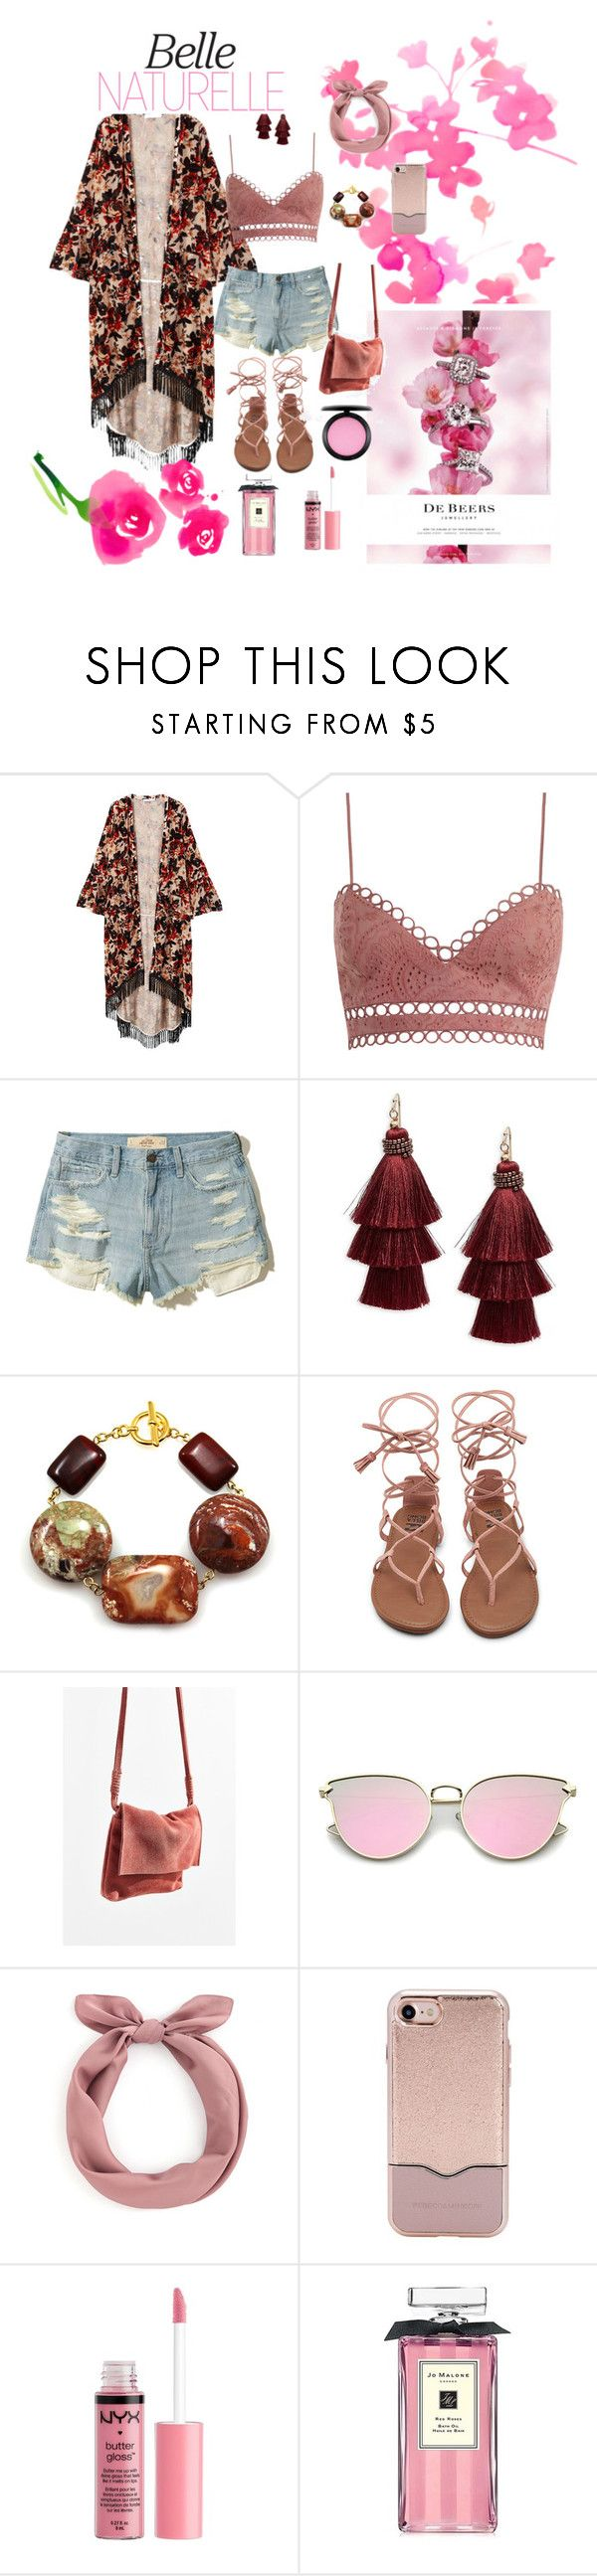 """Pink blossom🌸"" by sarvfashion ❤ liked on Polyvore featuring MANGO, Zimmermann, Hollister Co., Design Lab, De Beers, Urban Outfitters, Rebecca Minkoff, Charlotte Russe, Jo Malone and MAC Cosmetics"